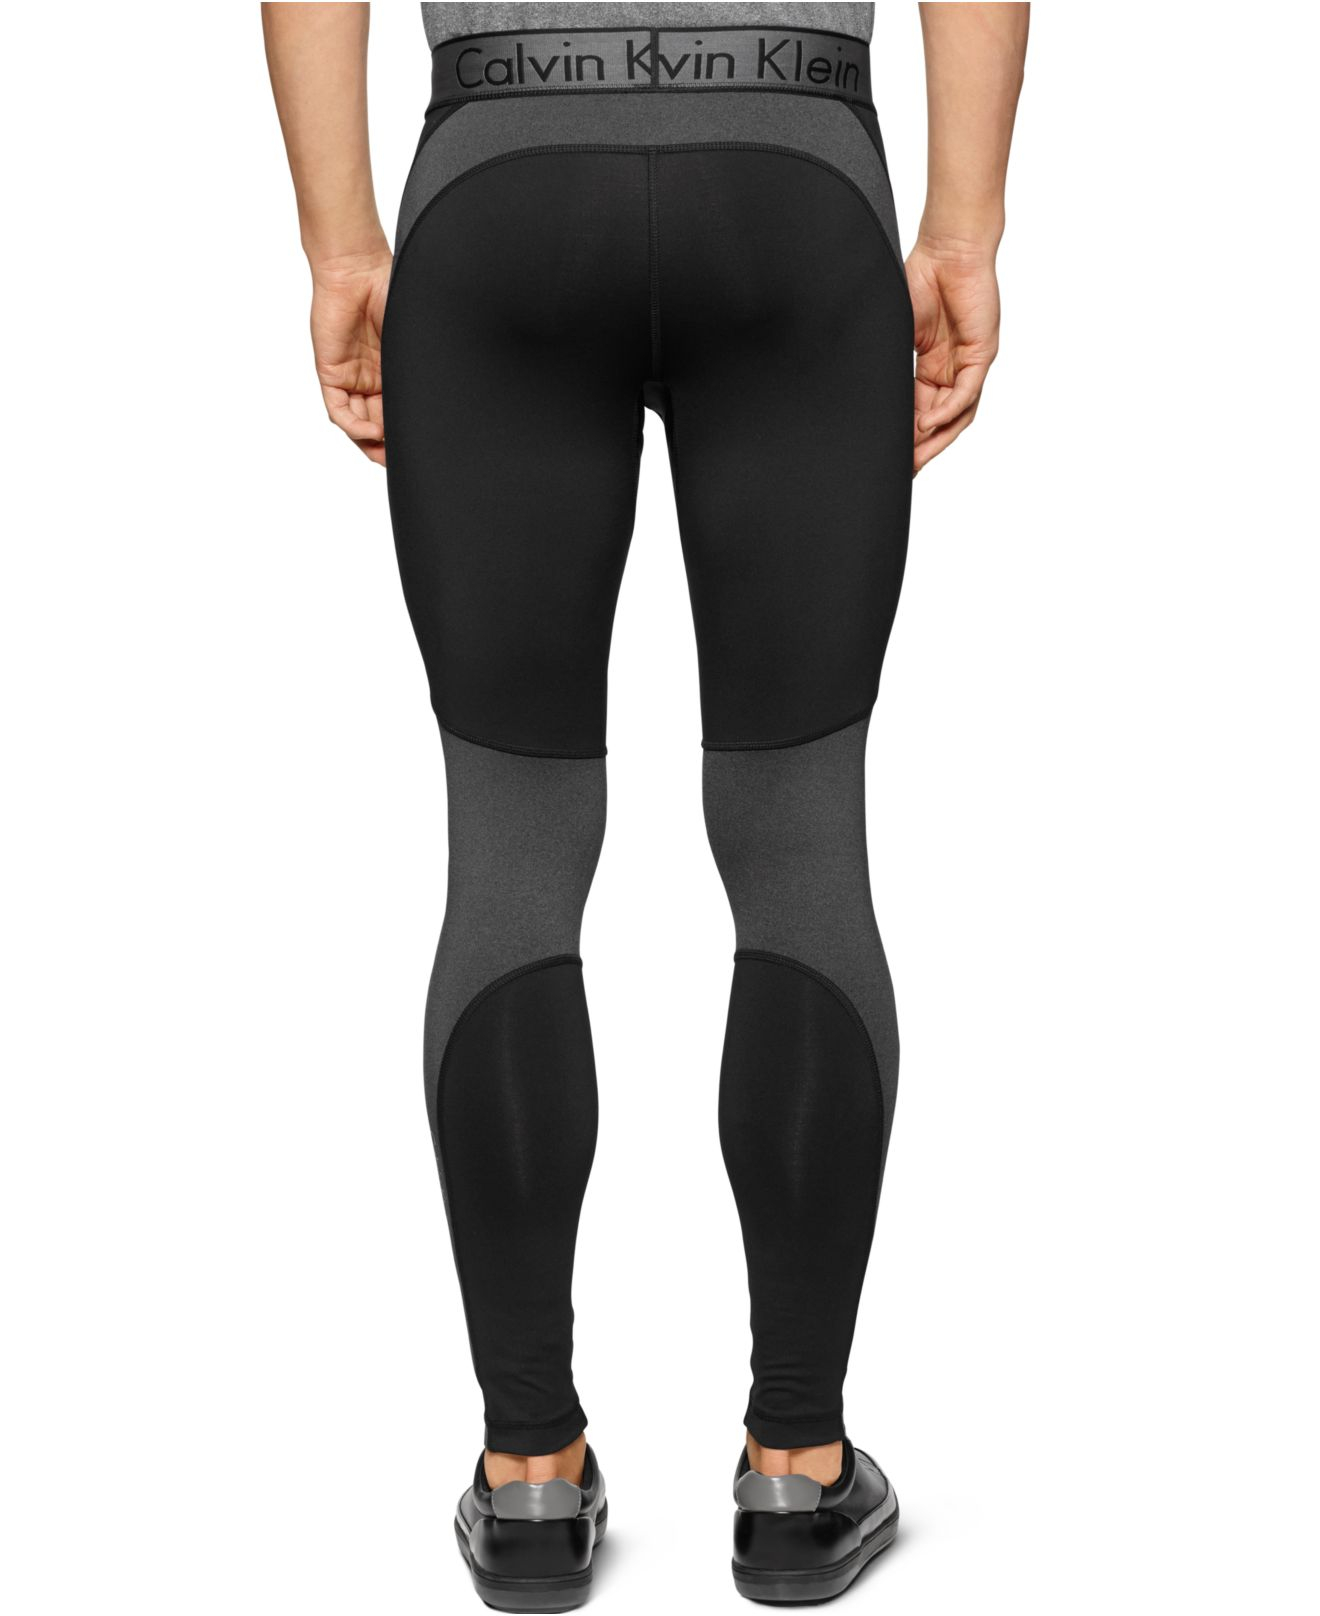 a808508ce48426 Calvin Klein Performance Stretch Compression Pants in Black for Men ...